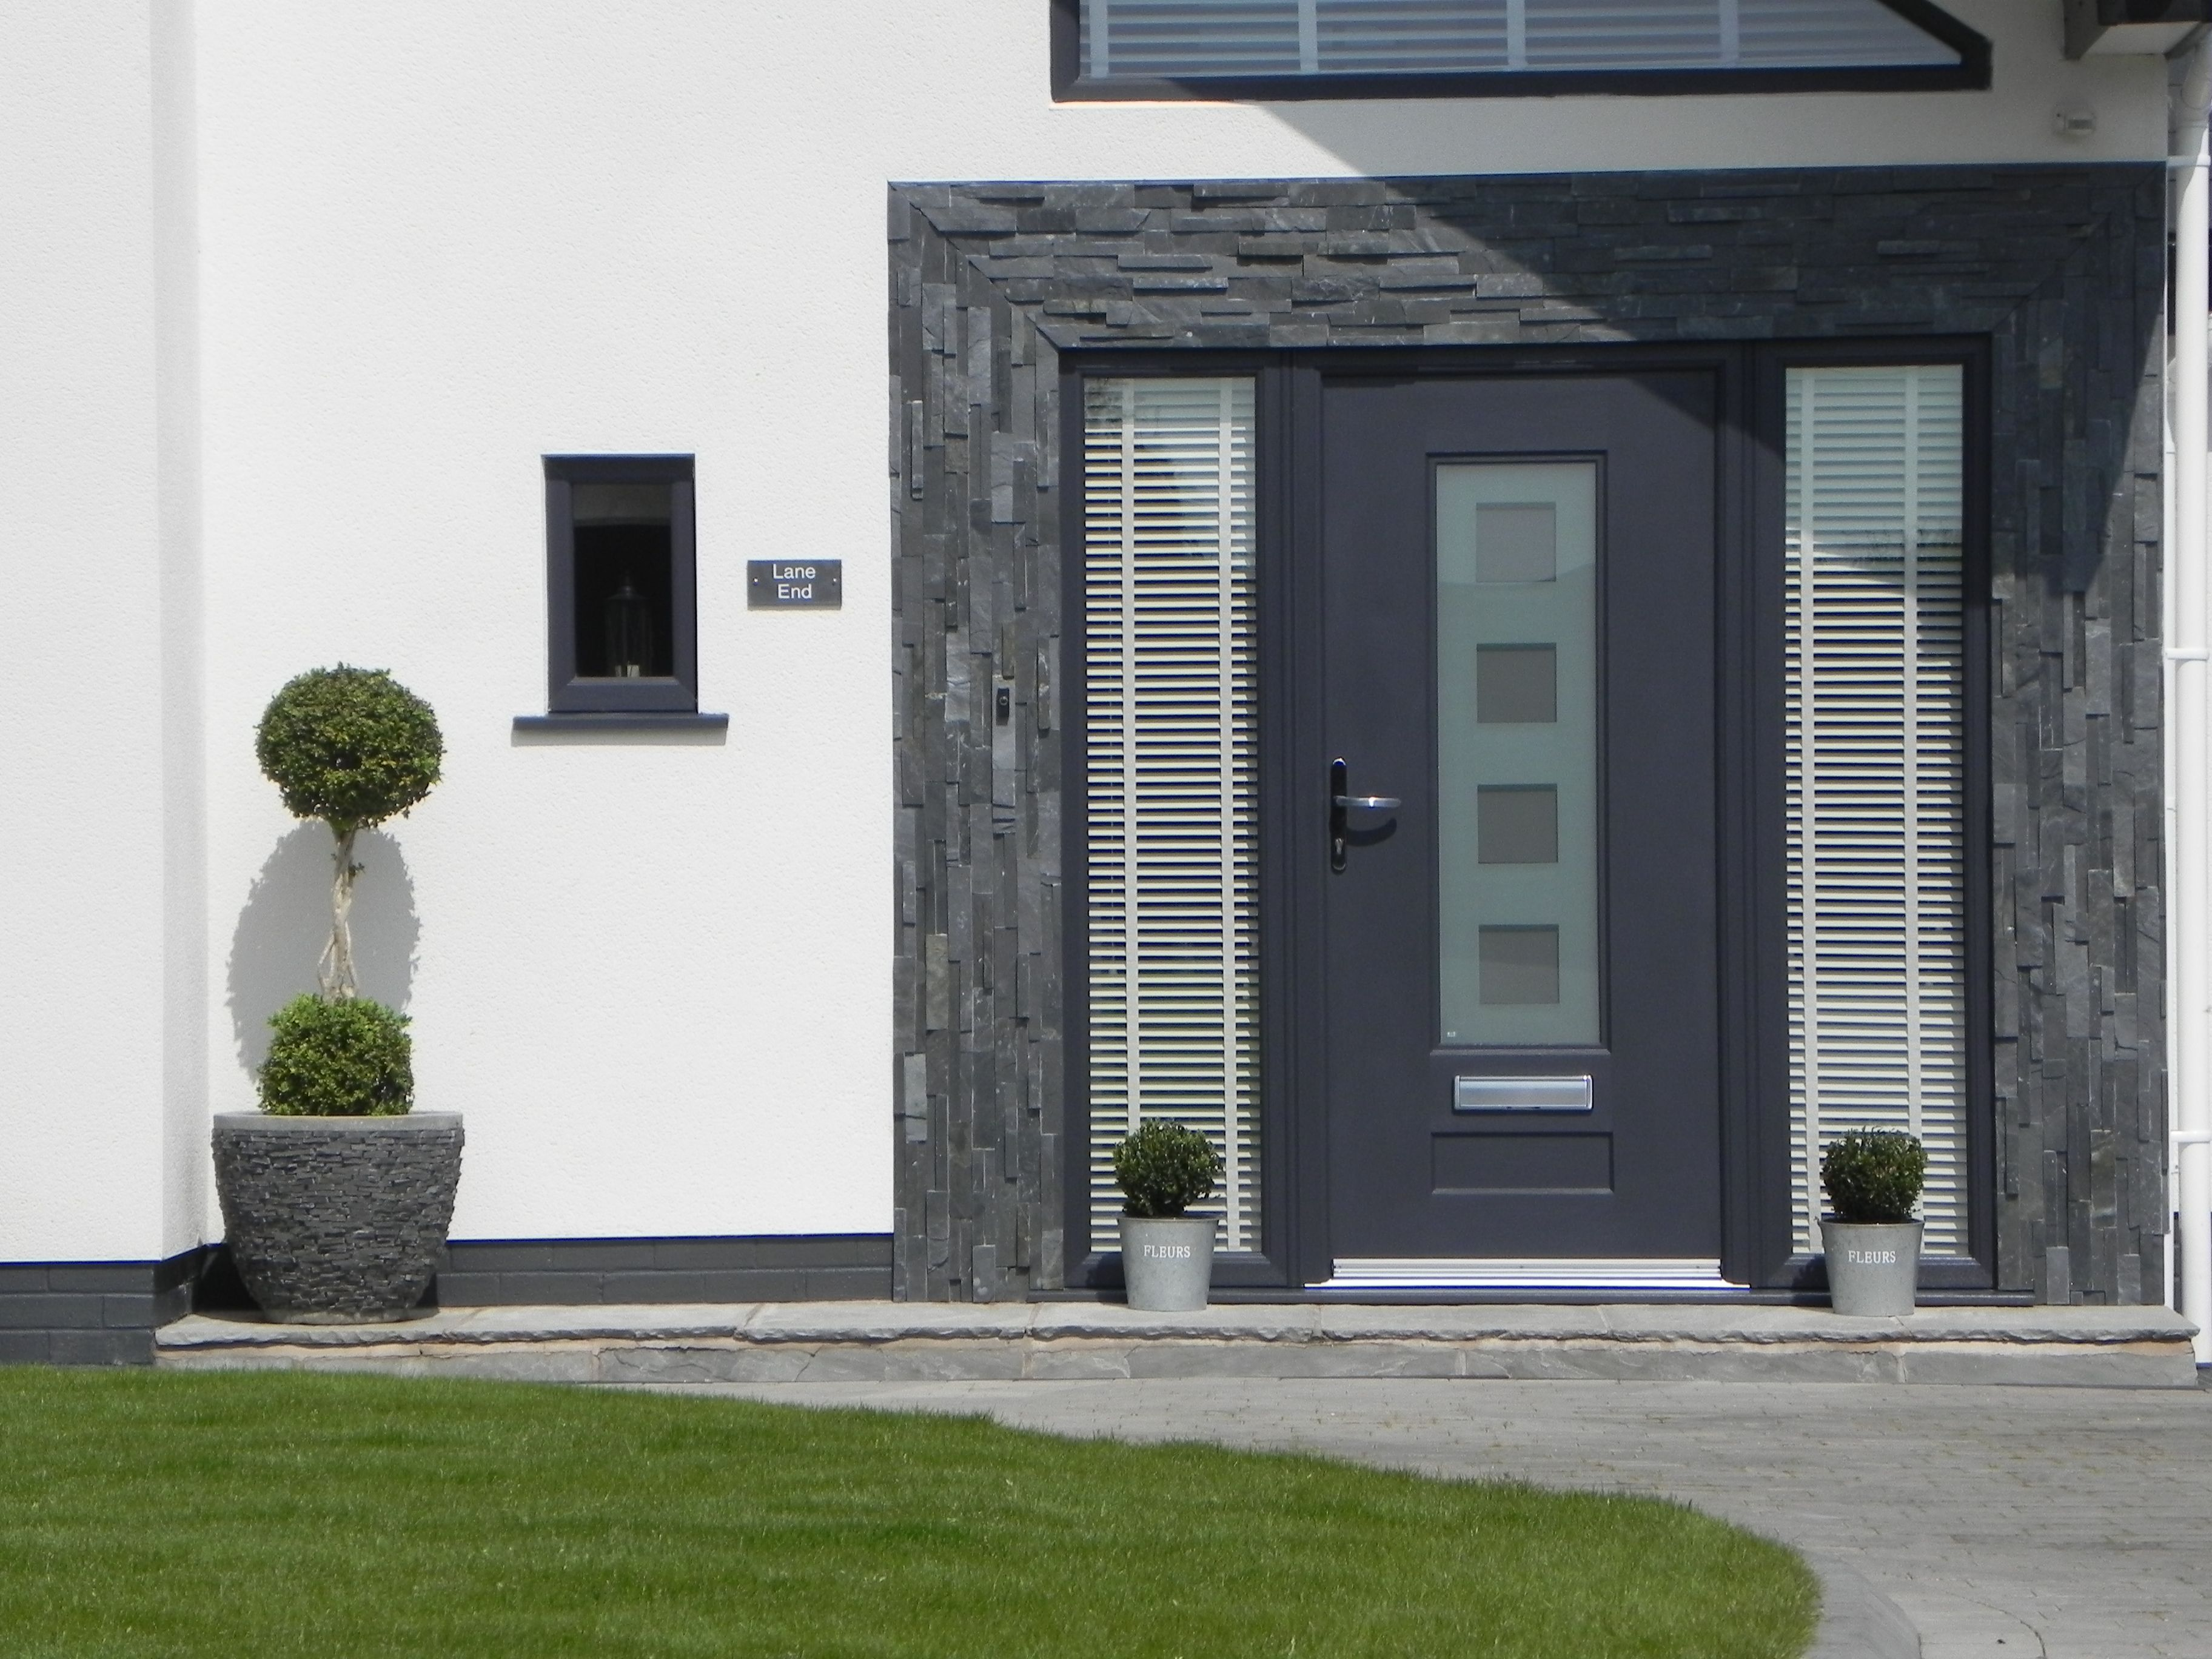 The #Rockdoor #Vogue With The Cube Glass Design Giving A 3D Effect. Truly